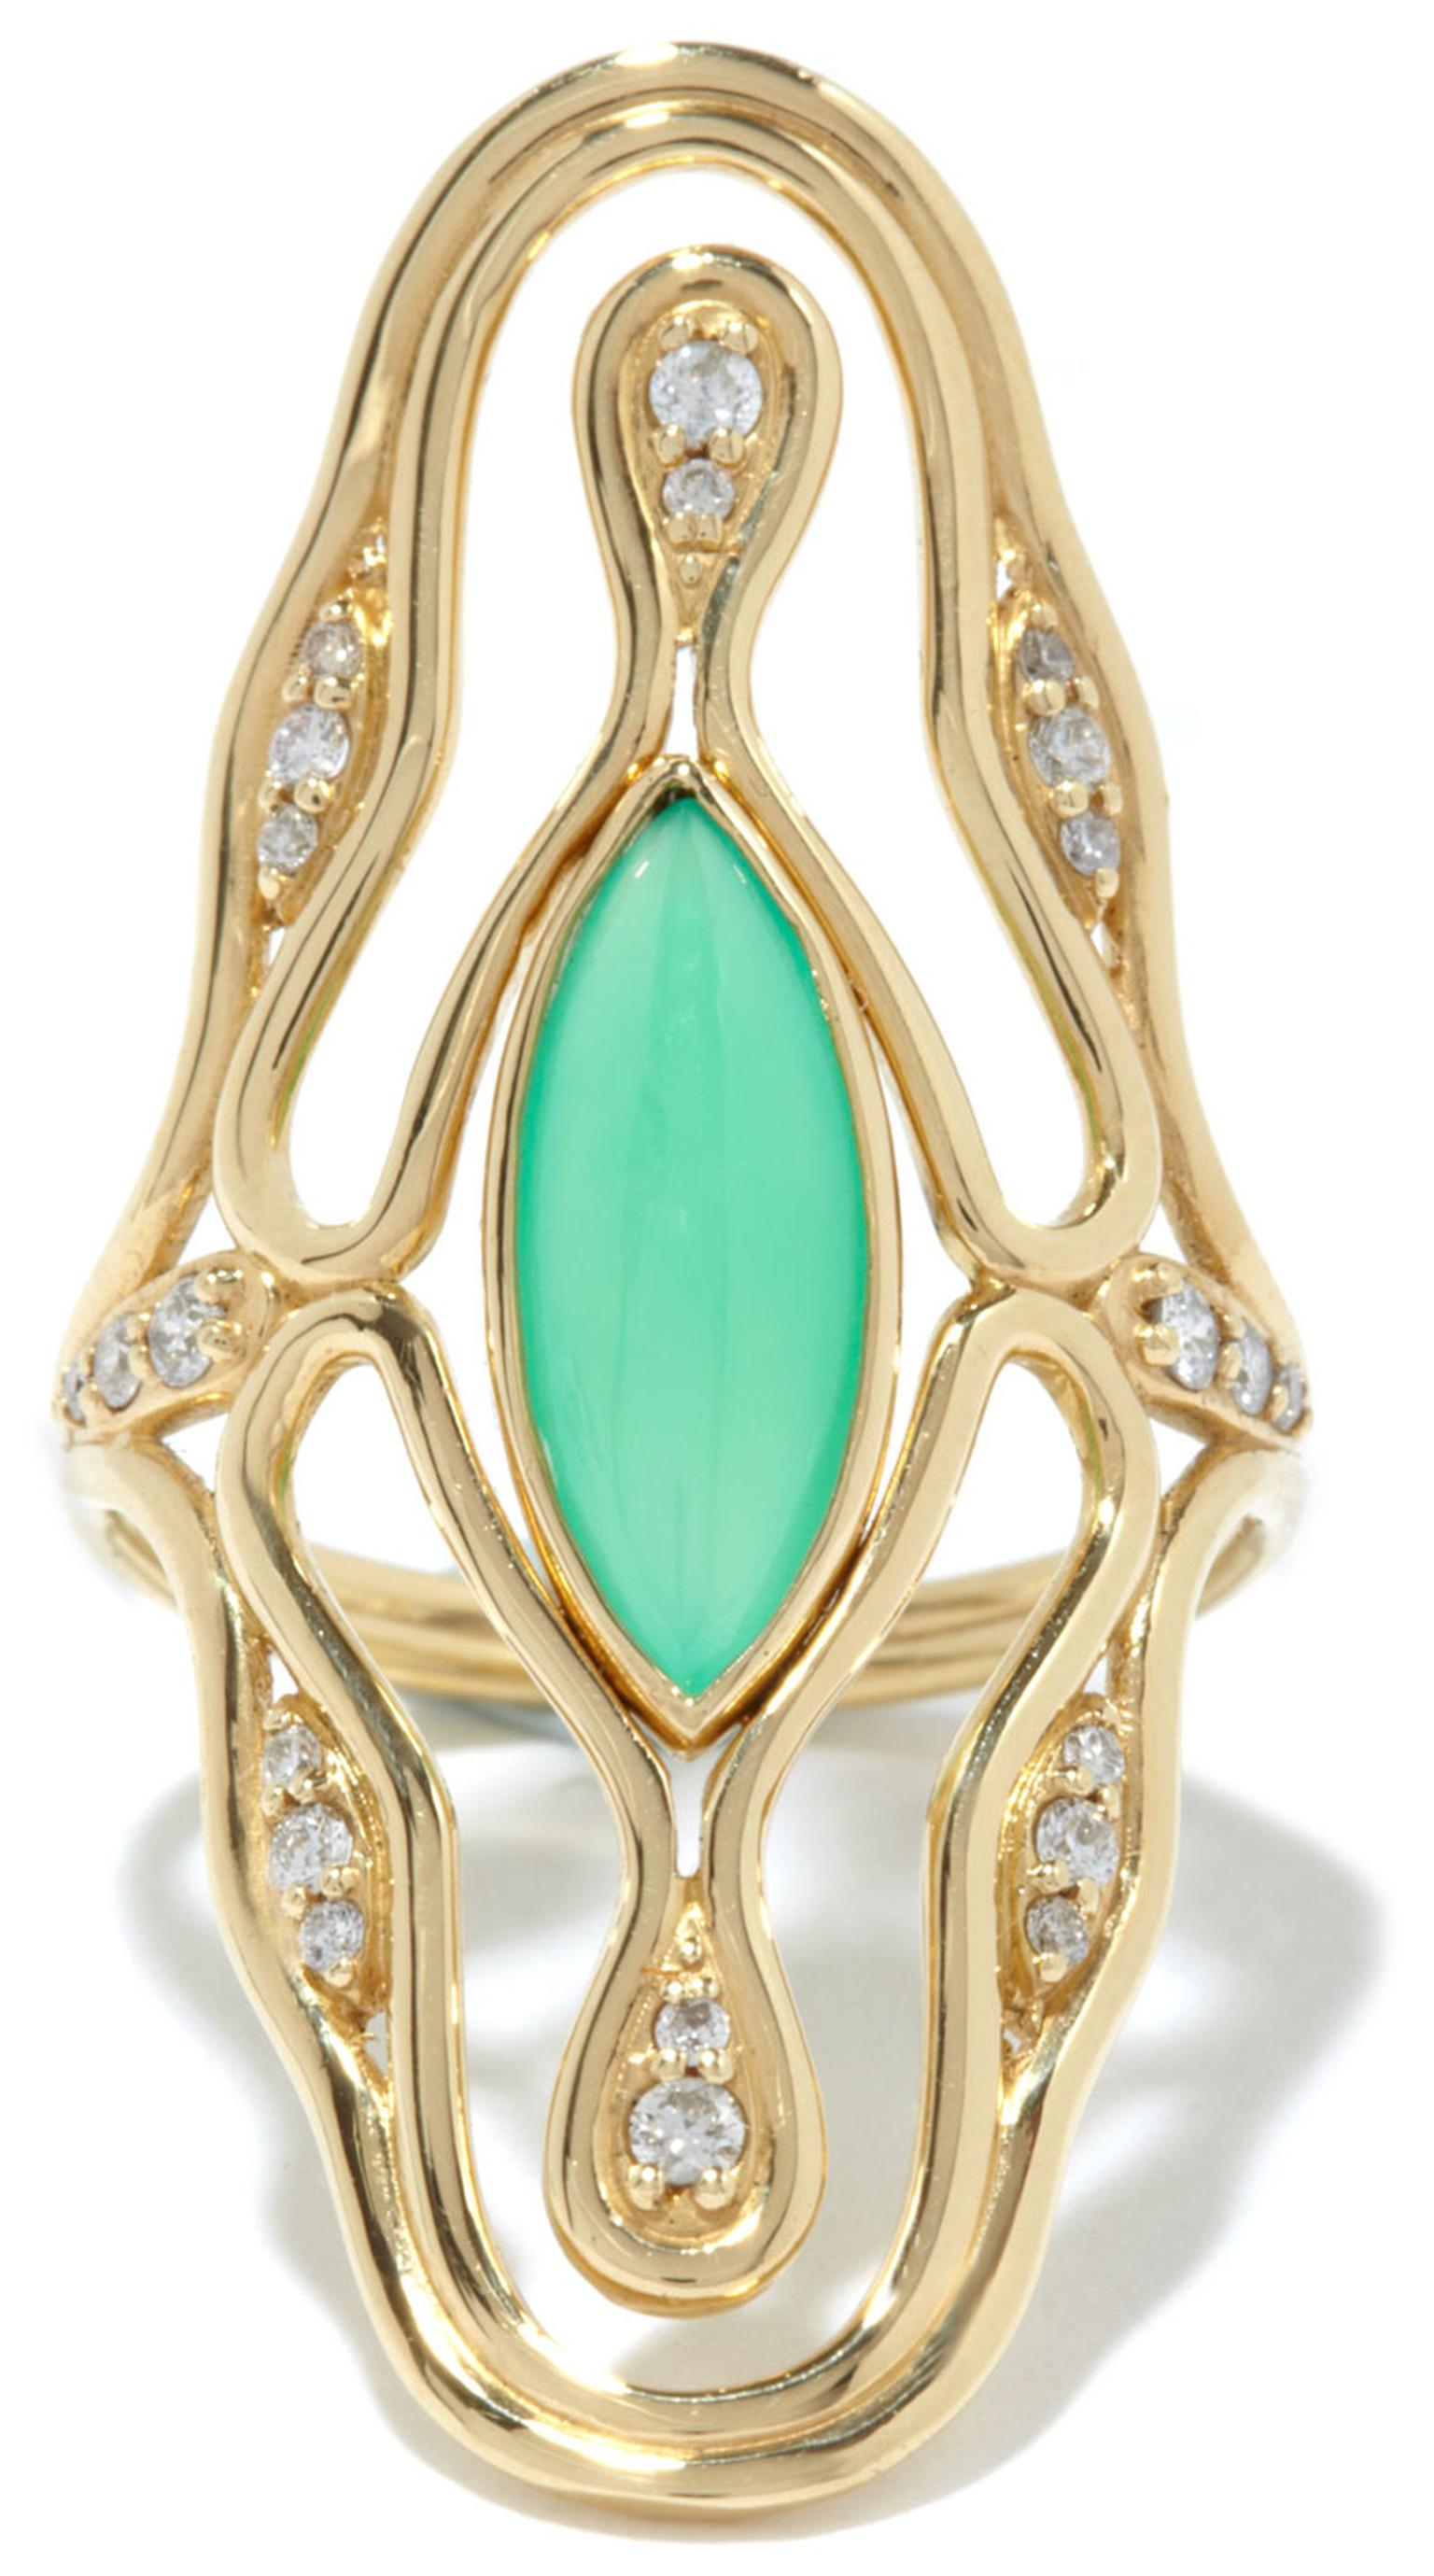 Fernando Jorge Fluid Diamonds Chrysoprase Ring